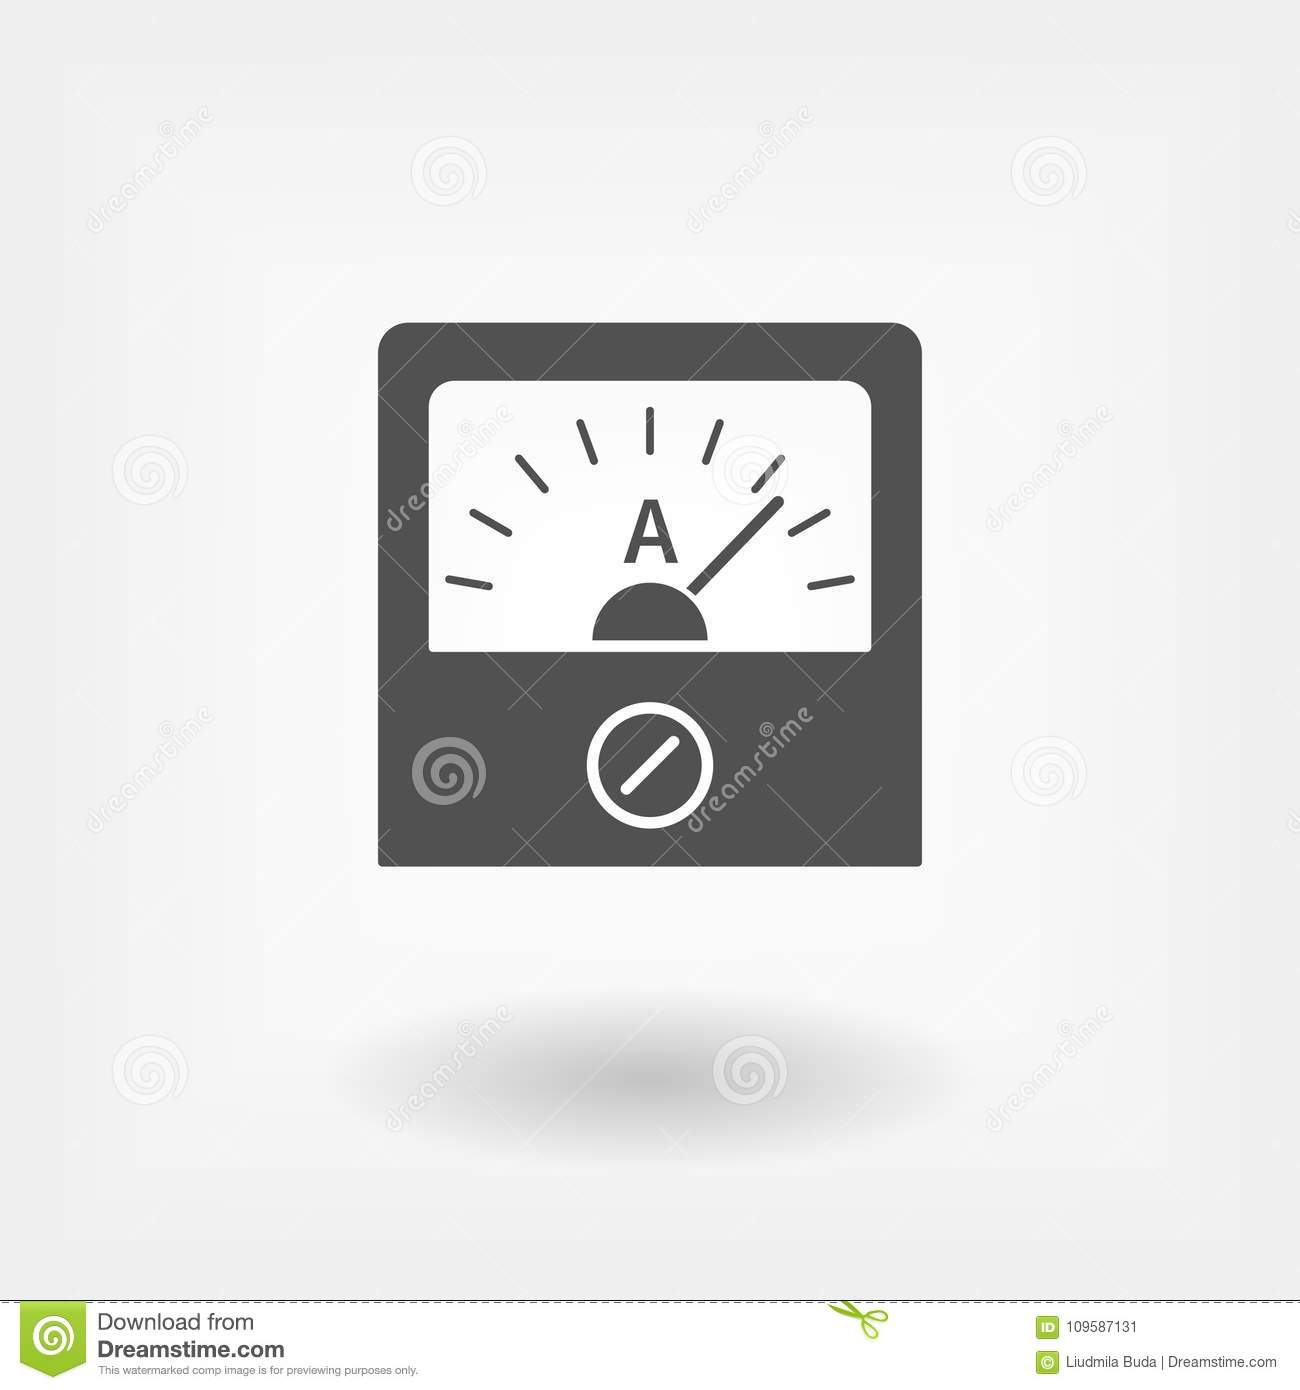 Ammeter icon, sign design. stock vector. Illustration of connection ...